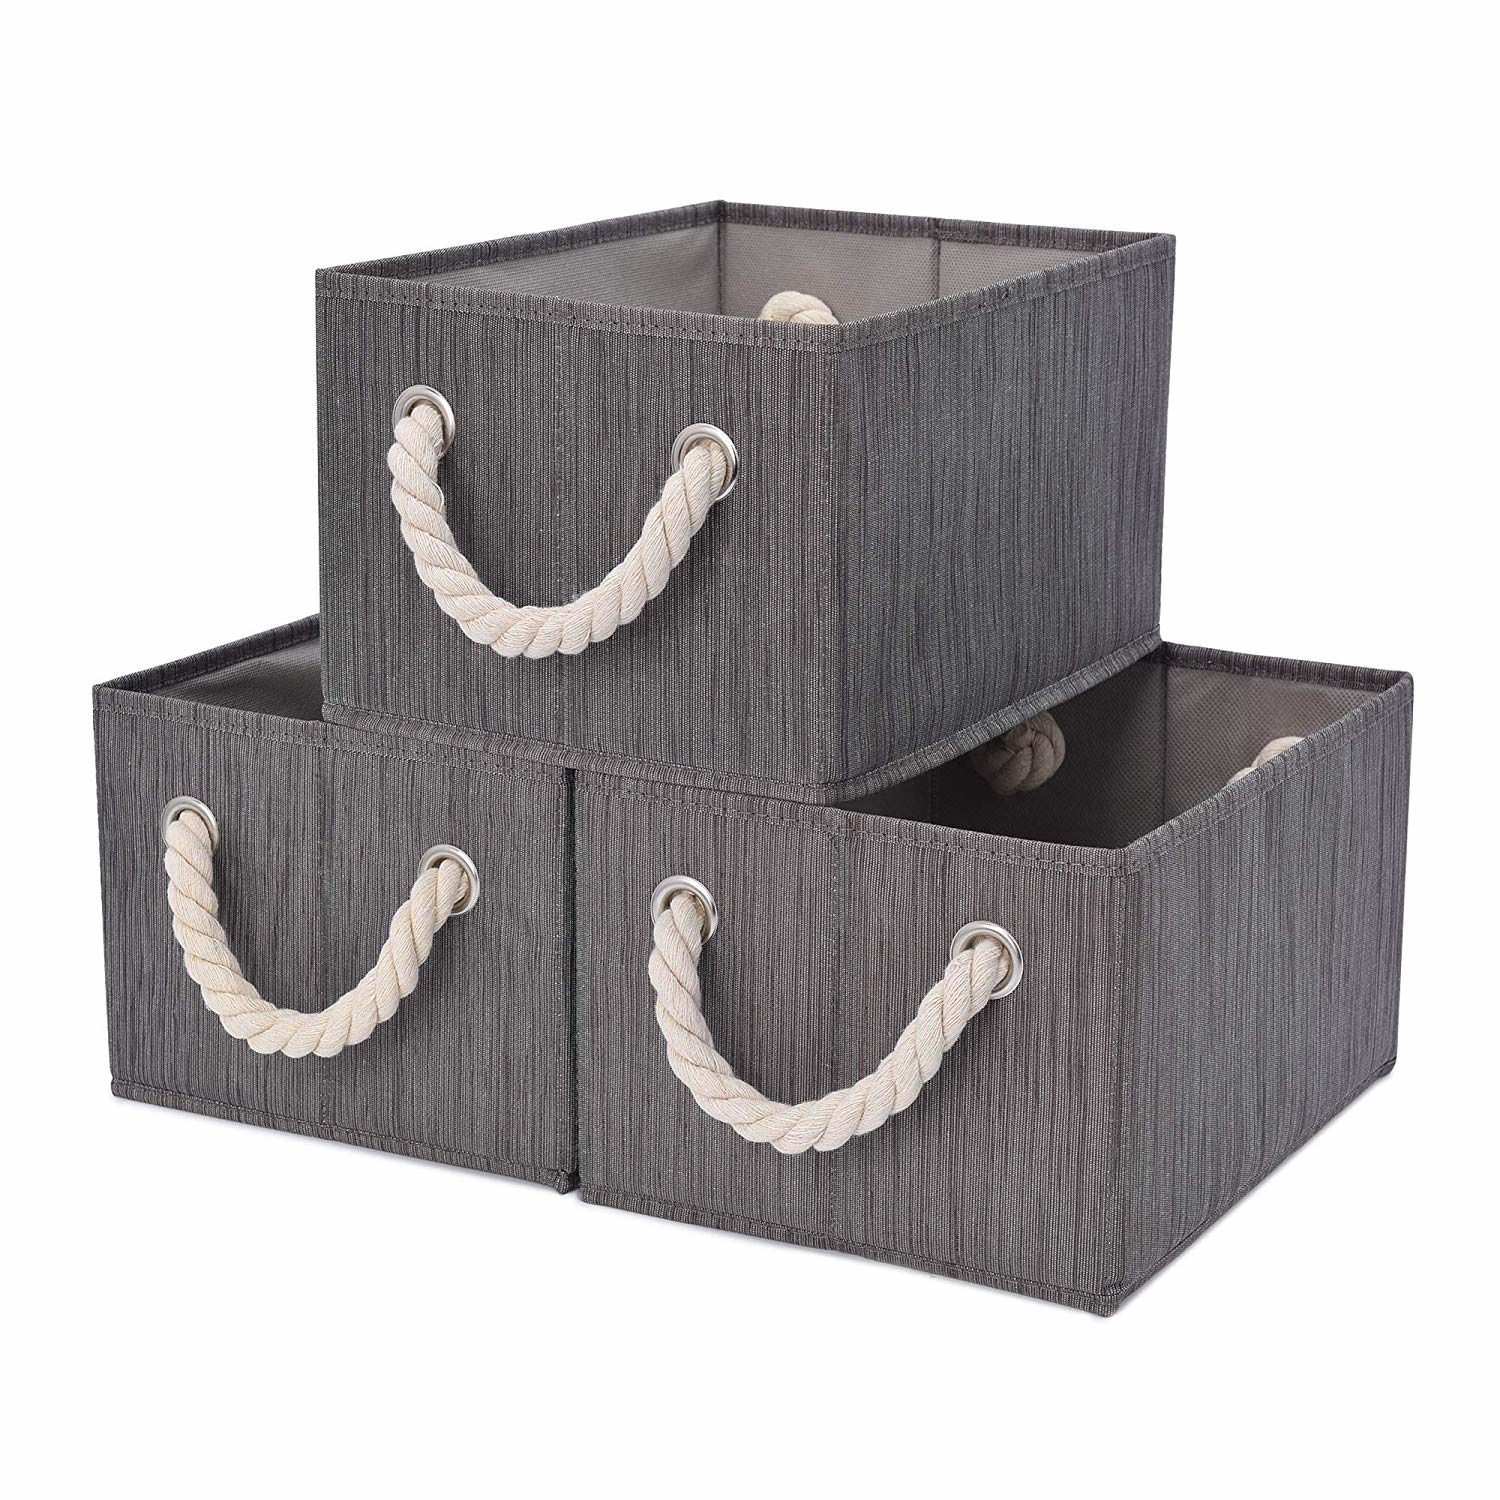 StorageWorks Foldable Storage Basket, 3-Pack, Large, Taupe, Bamboo Style, Cotton Rope Handles